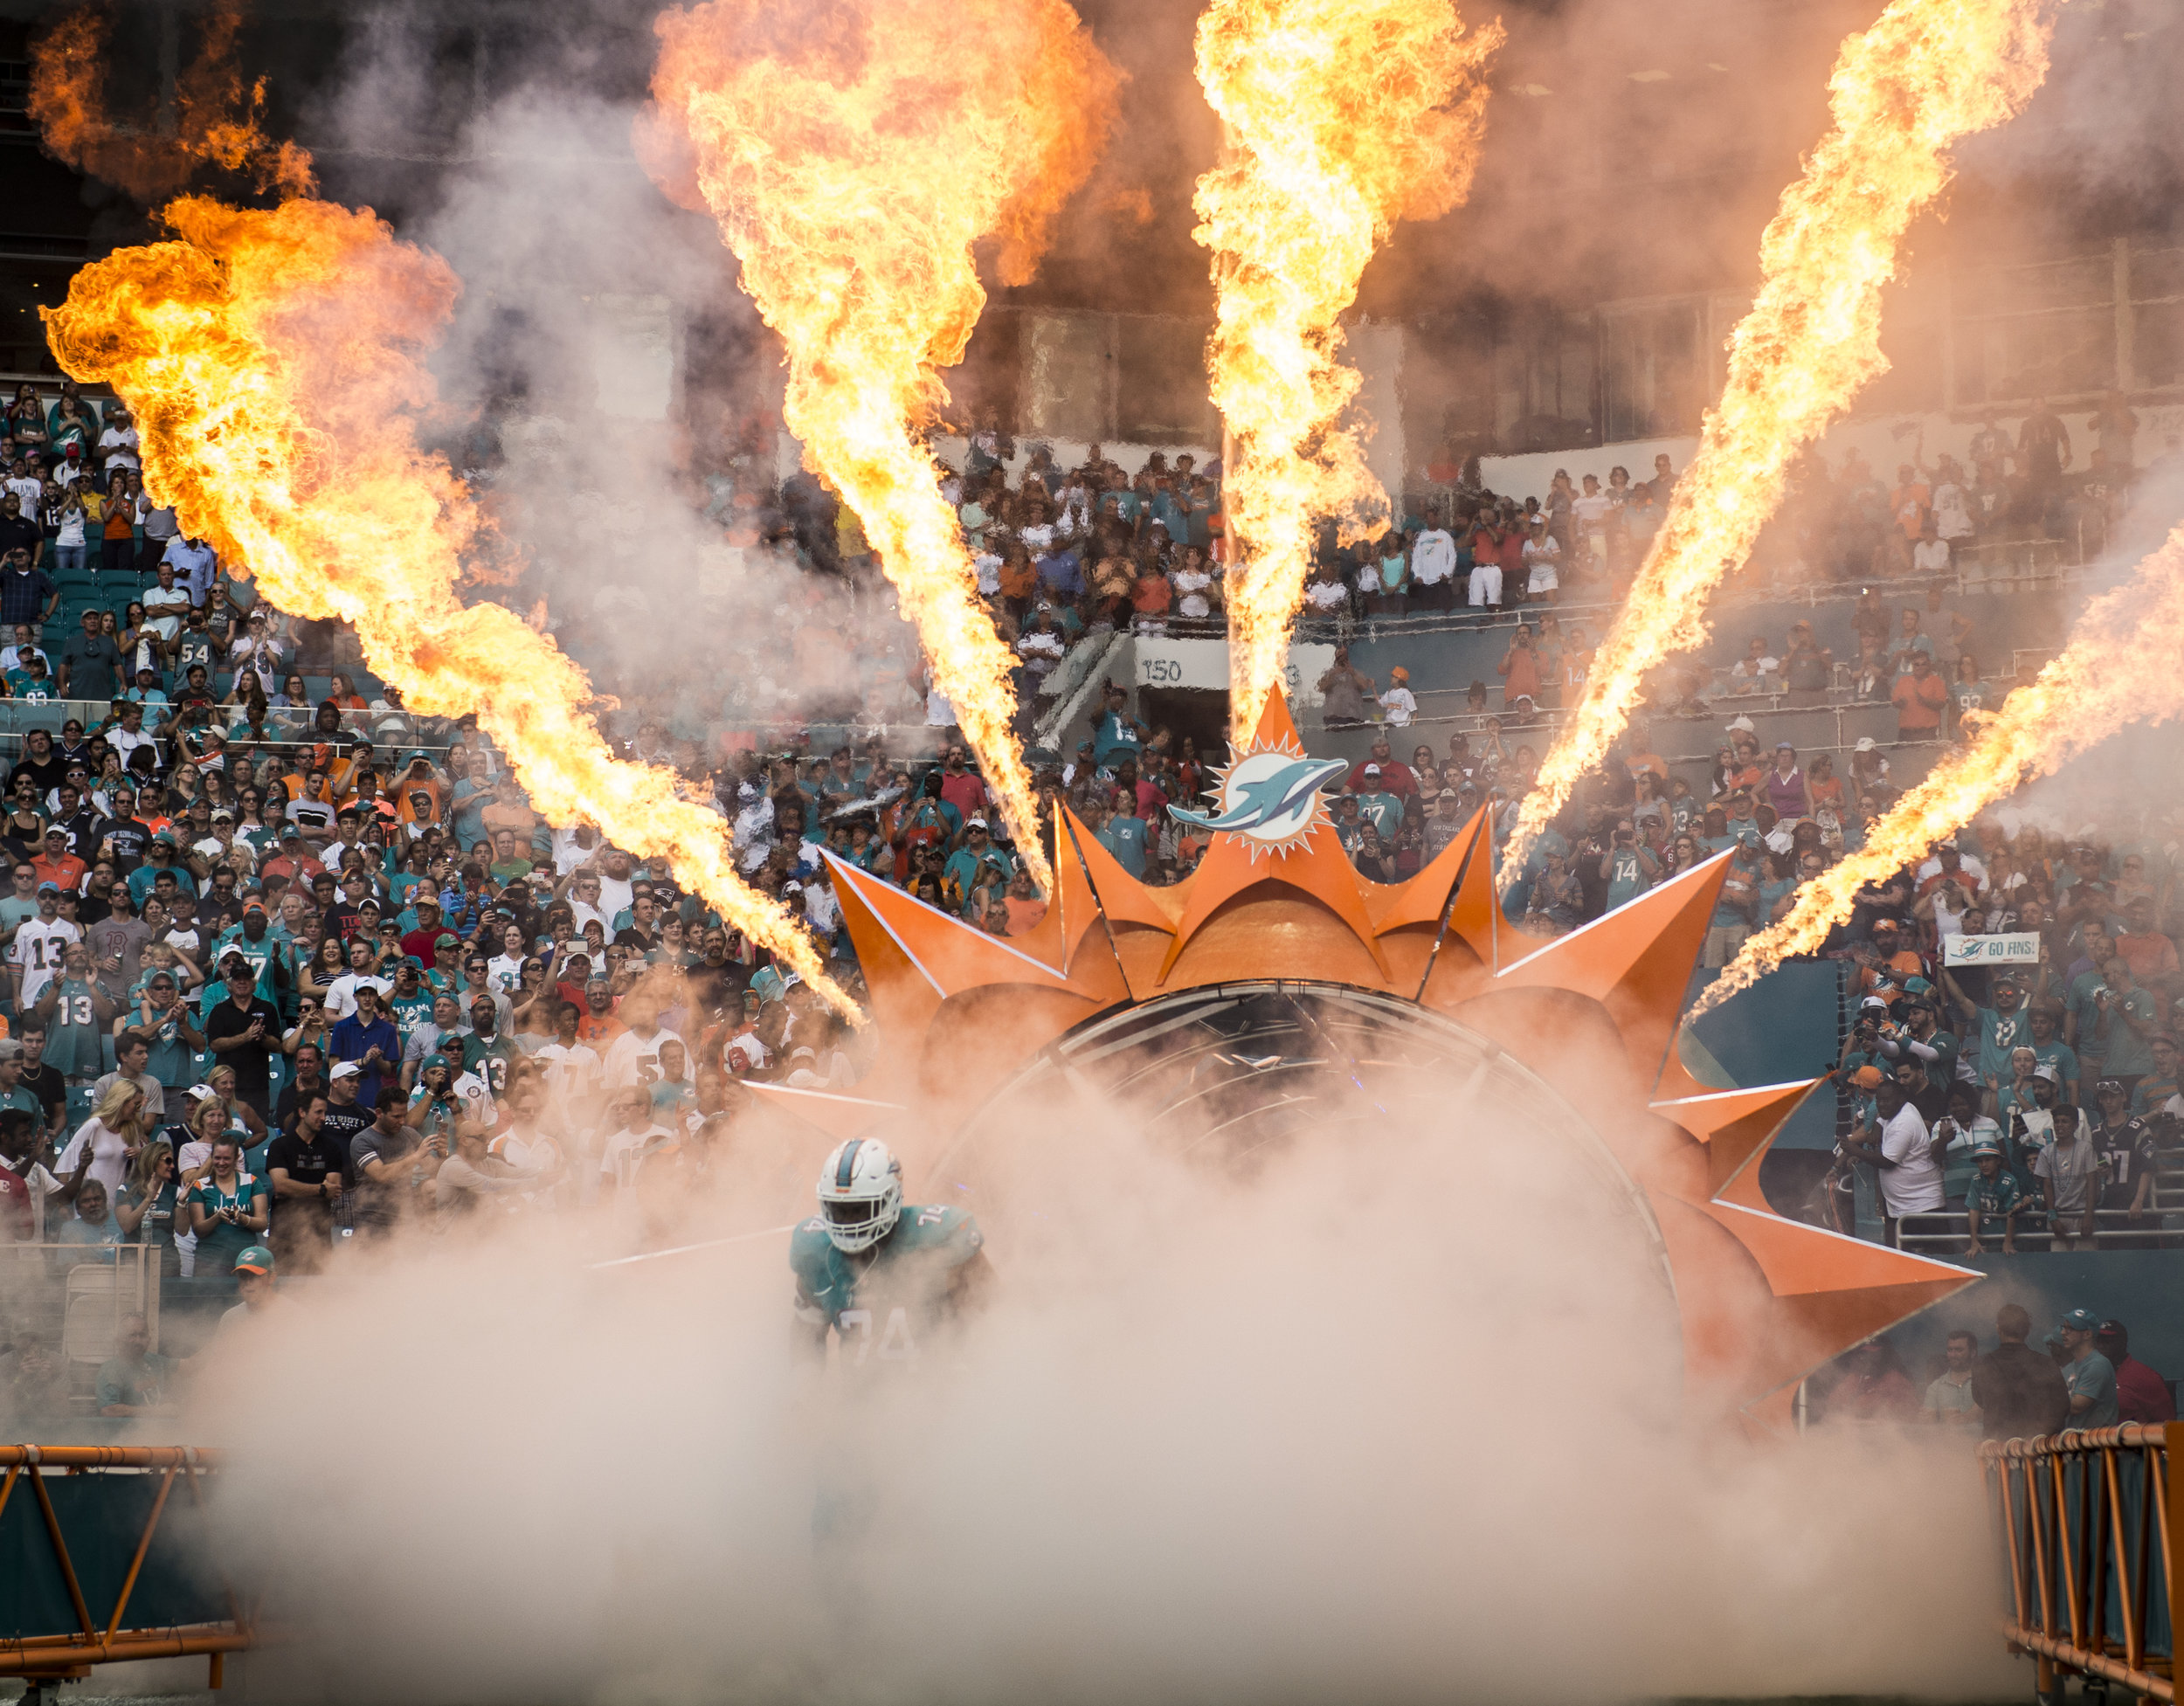 Miami Dolphins tackle Jermon Bushrod makes his entrance into the game versus the New England Patriots at Hard Rock Stadium in Miami Gardens, Florida, January 1, 2017.